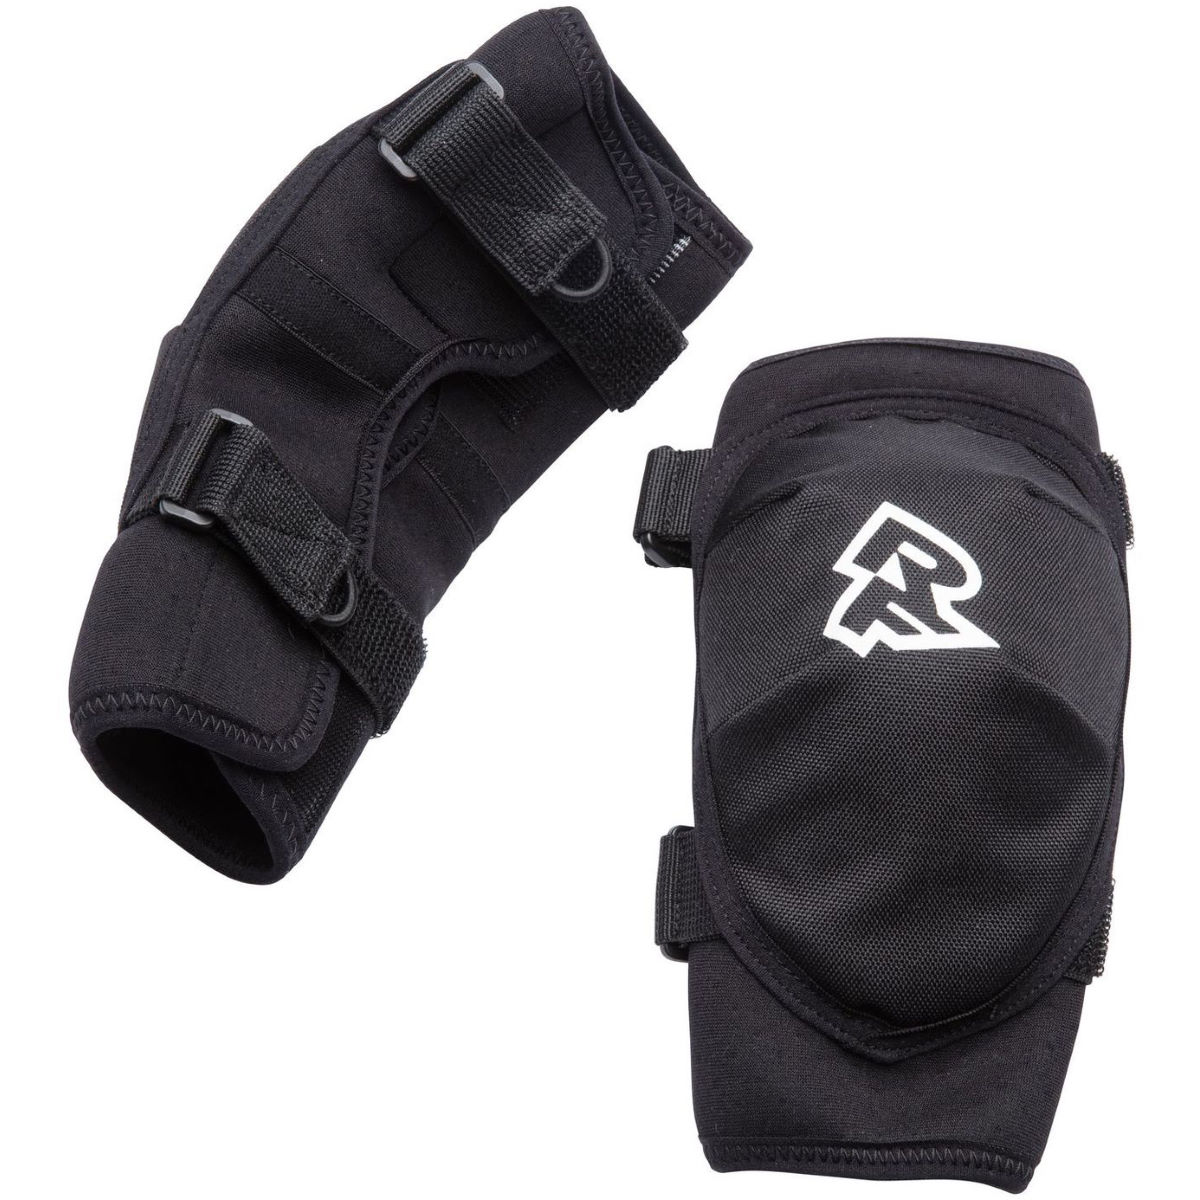 Race Face Youth Sendy Elbow Pads - L/xl Stealth  Elbow Pads